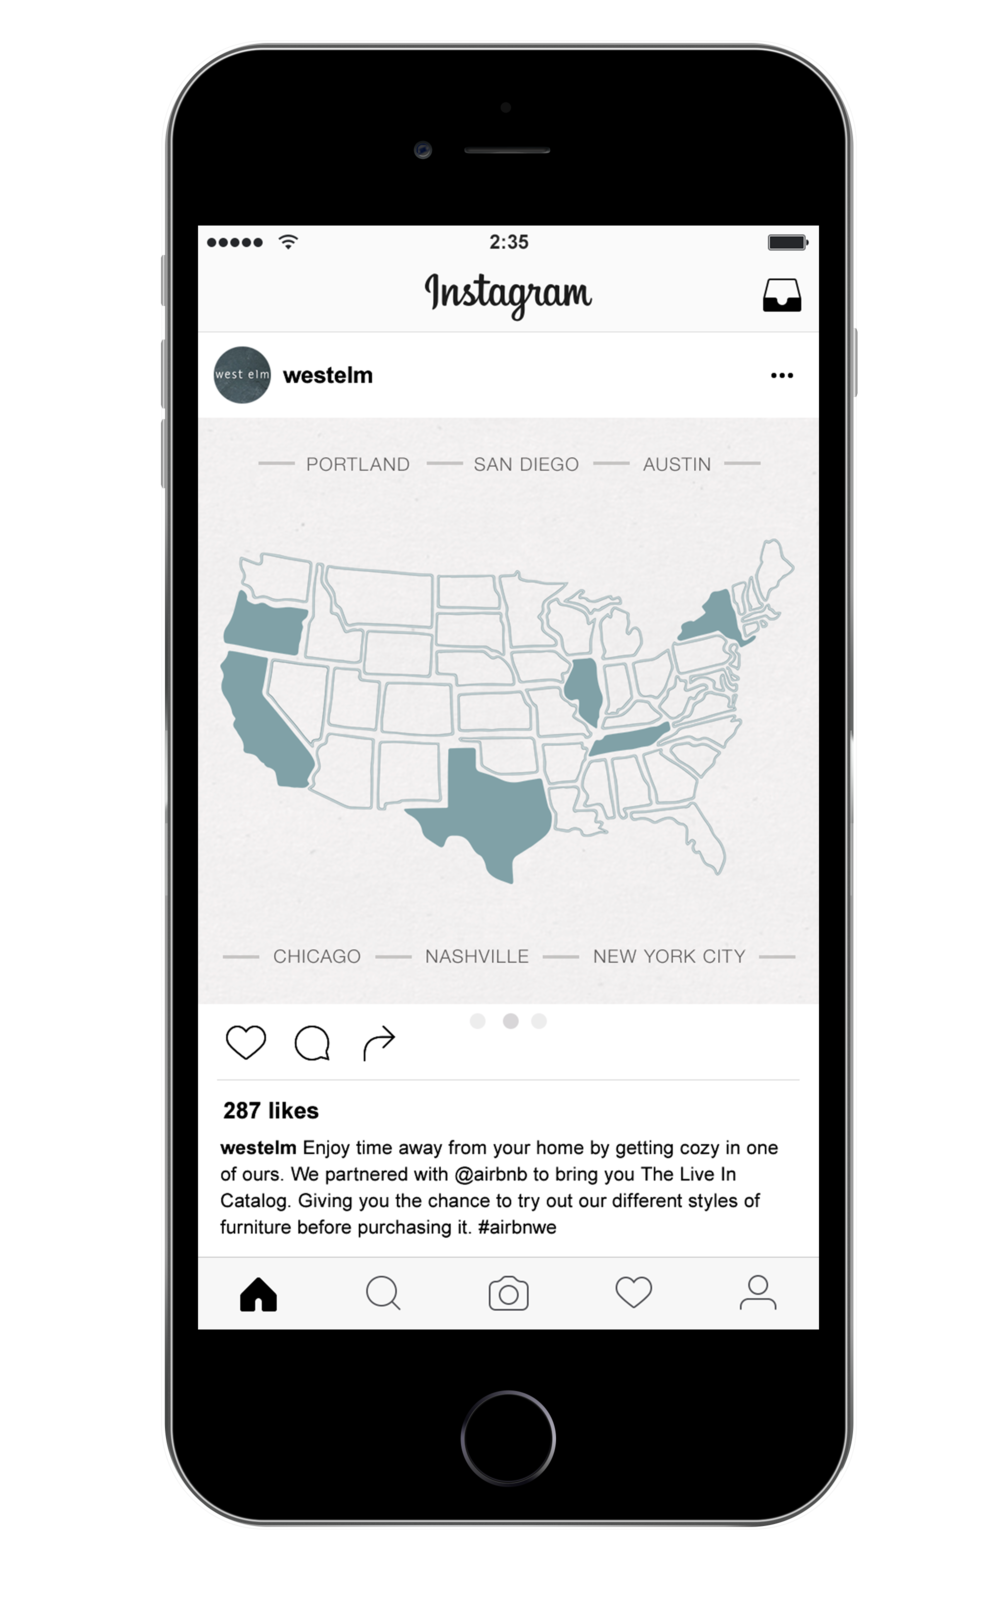 instagram_map_mockup.png